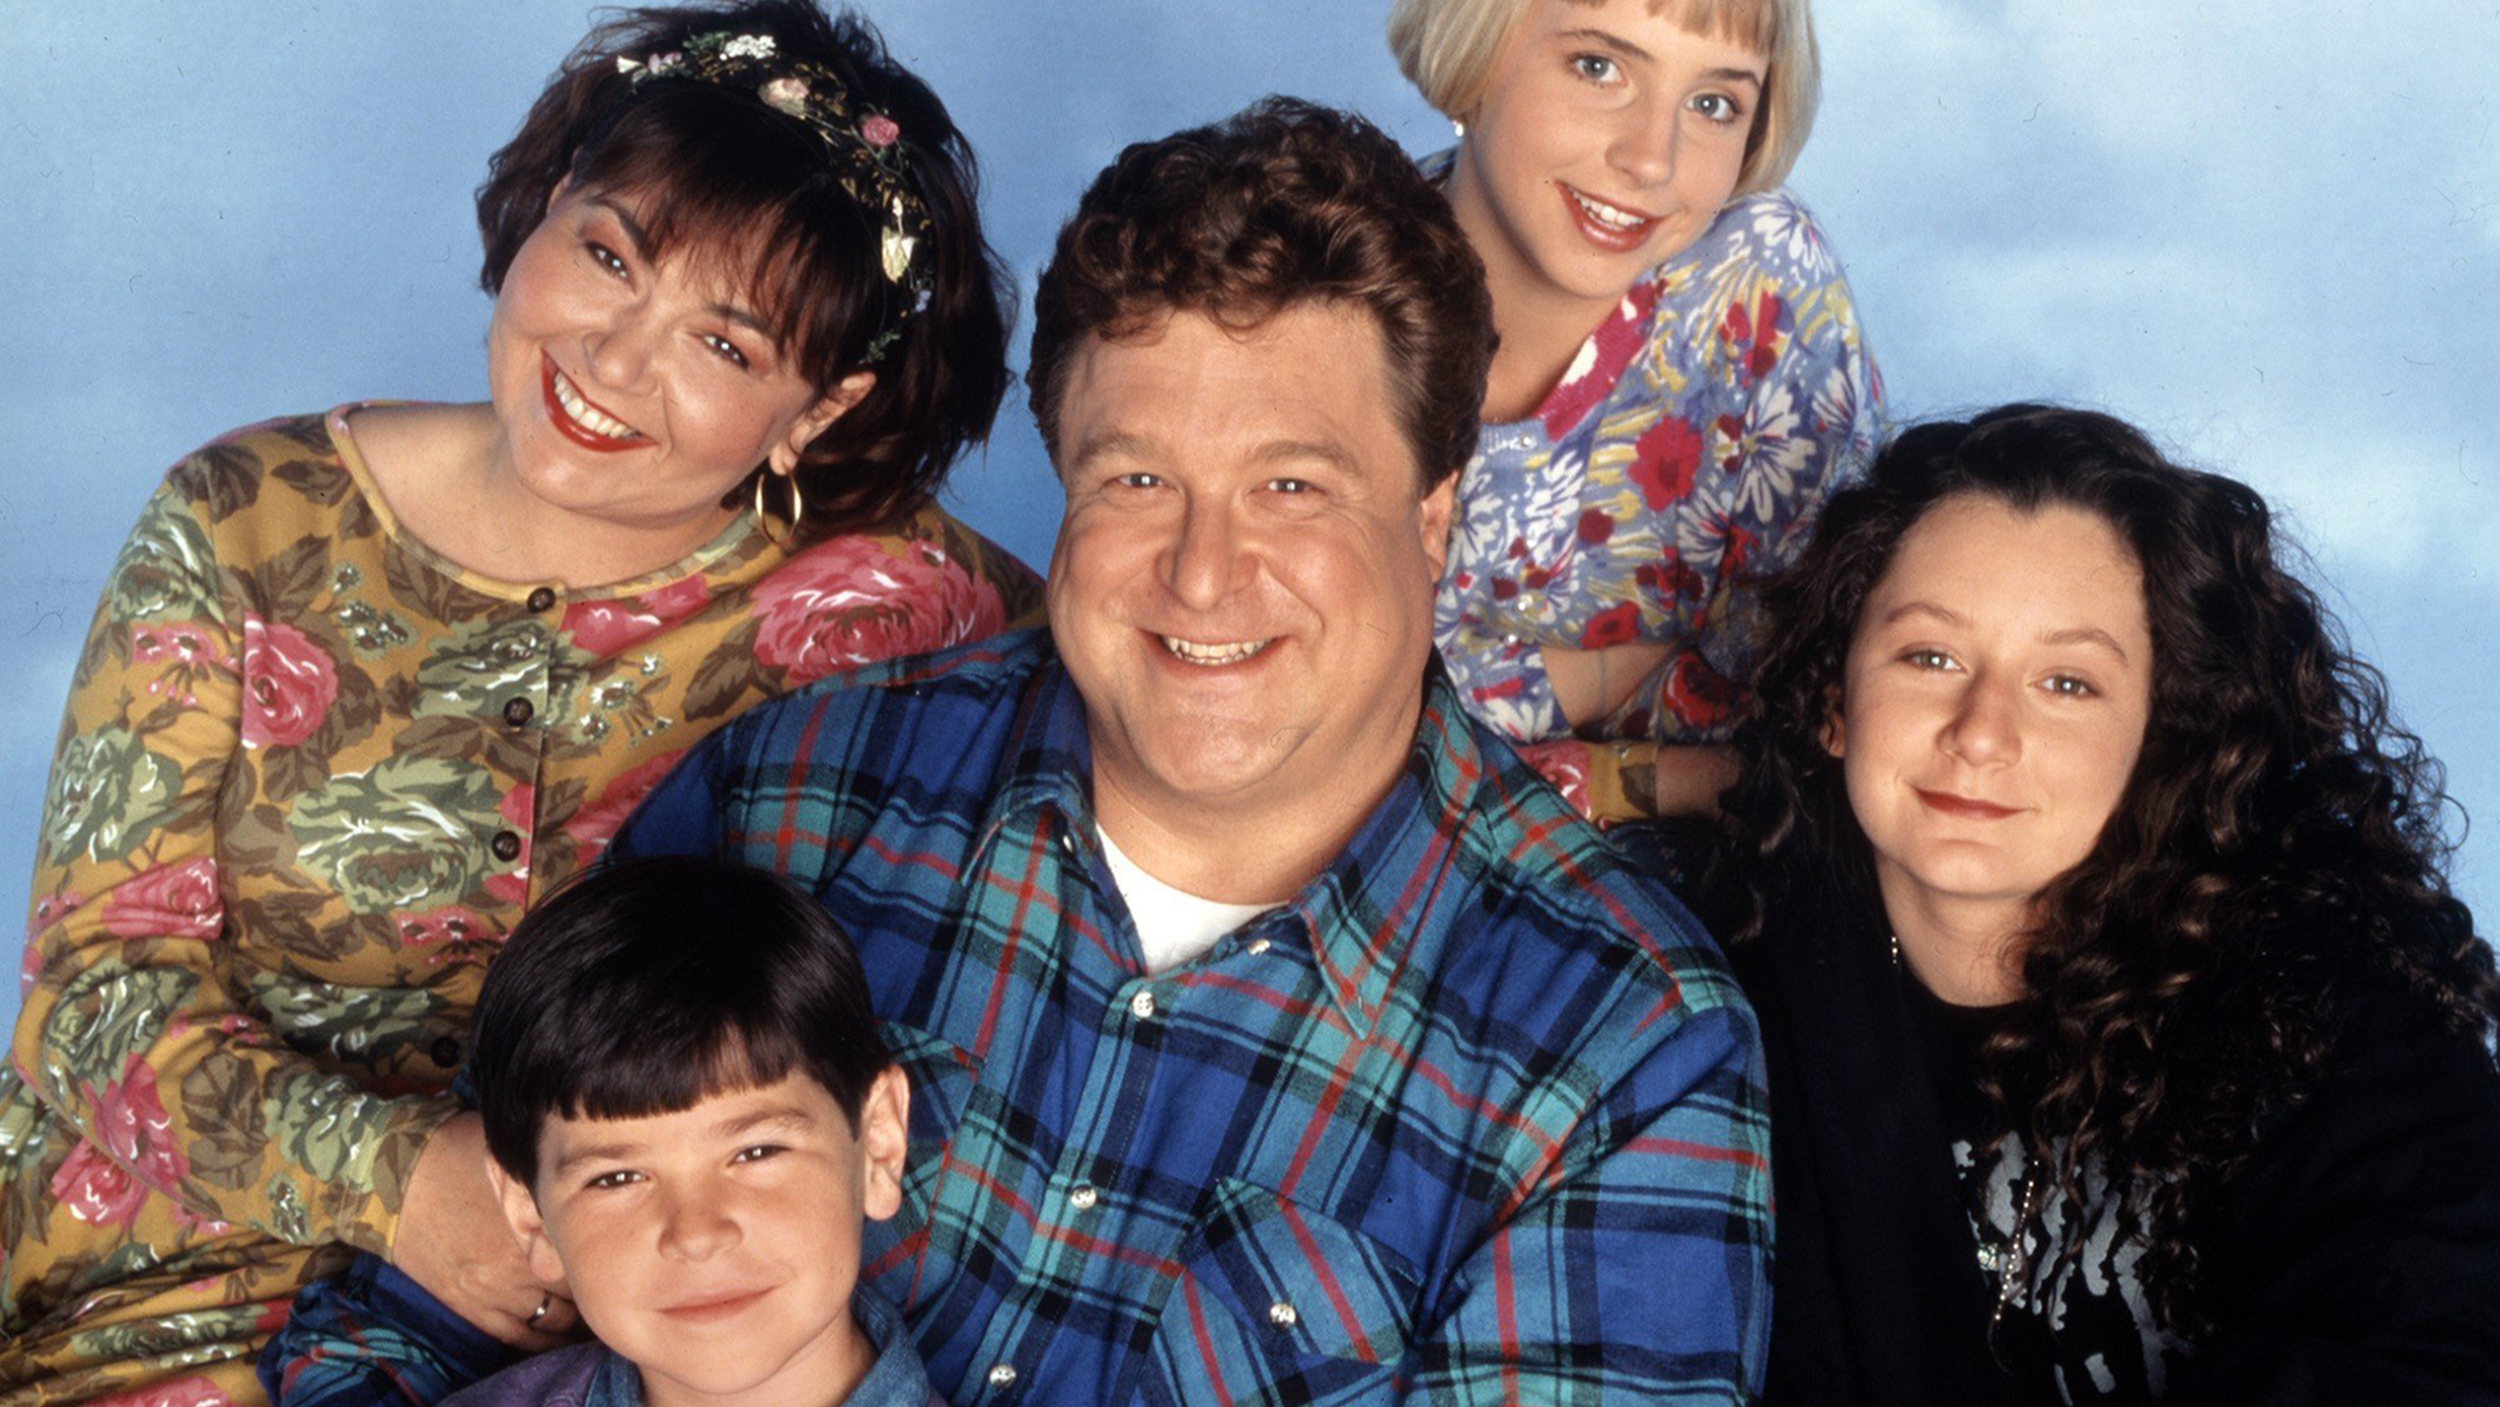 See Roseanne and Dan together again in new photo from 'Roseanne' revival